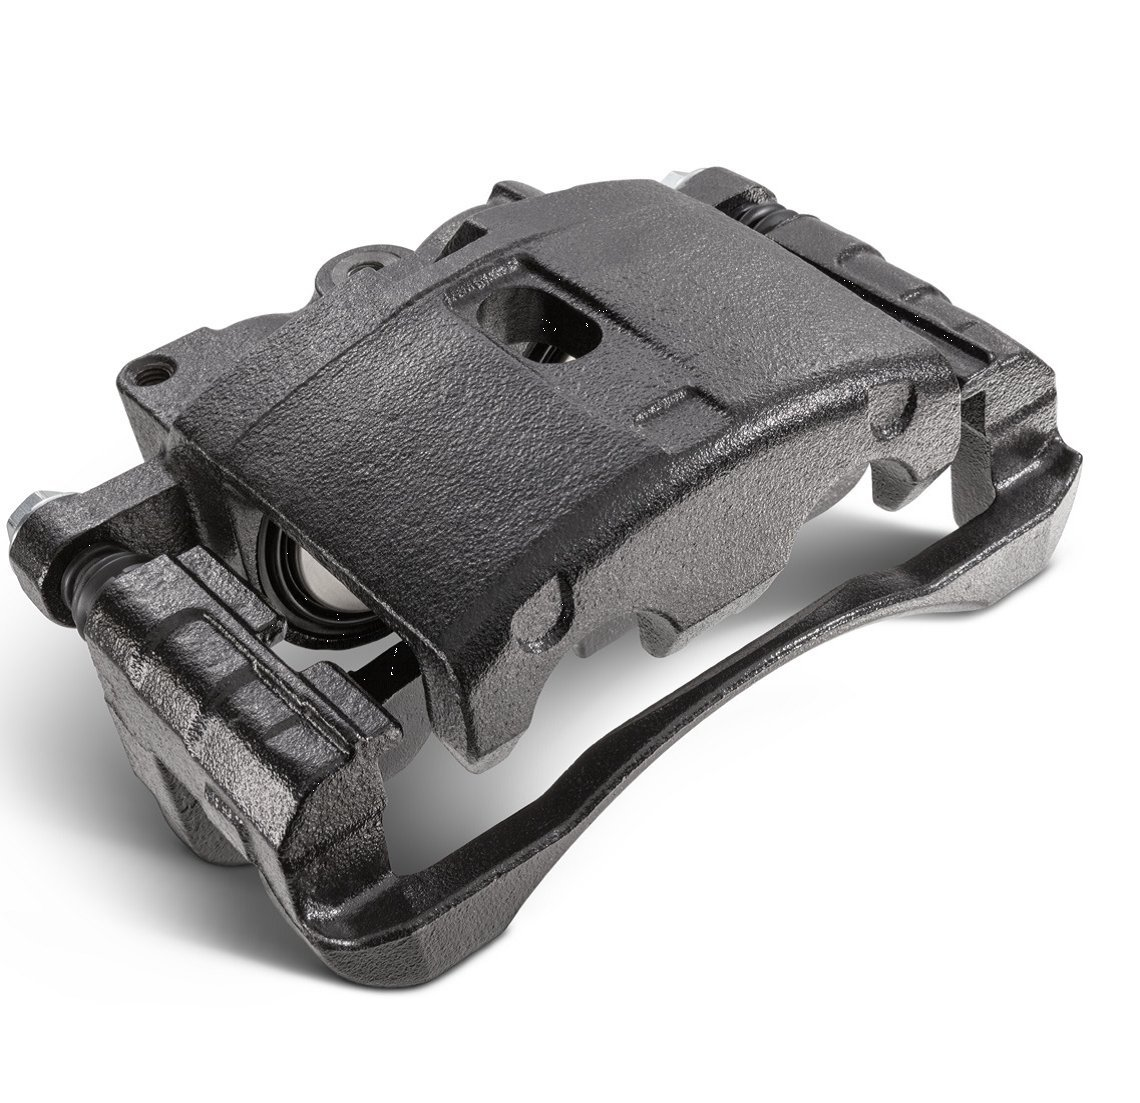 Omnicraft Calipers Part Number QBRC325RM Ford